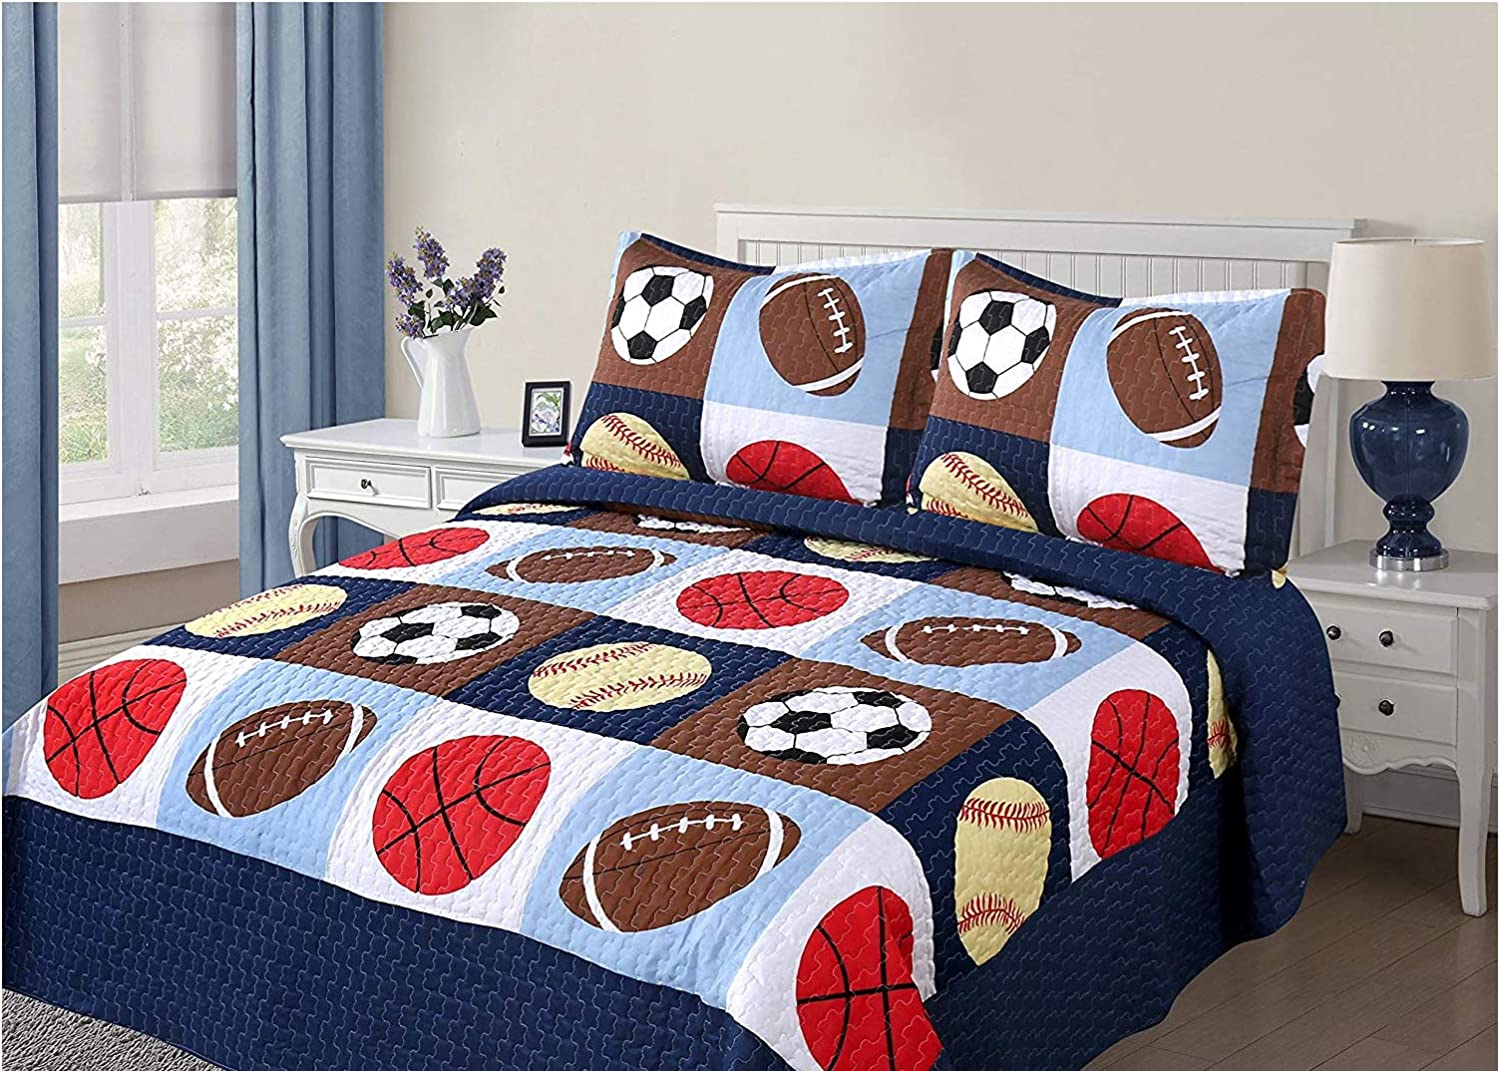 Golden Linens 3 Pieces Full Size Quilt Ranking TOP18 Sports Los Angeles Mall Bedspread Set Kids